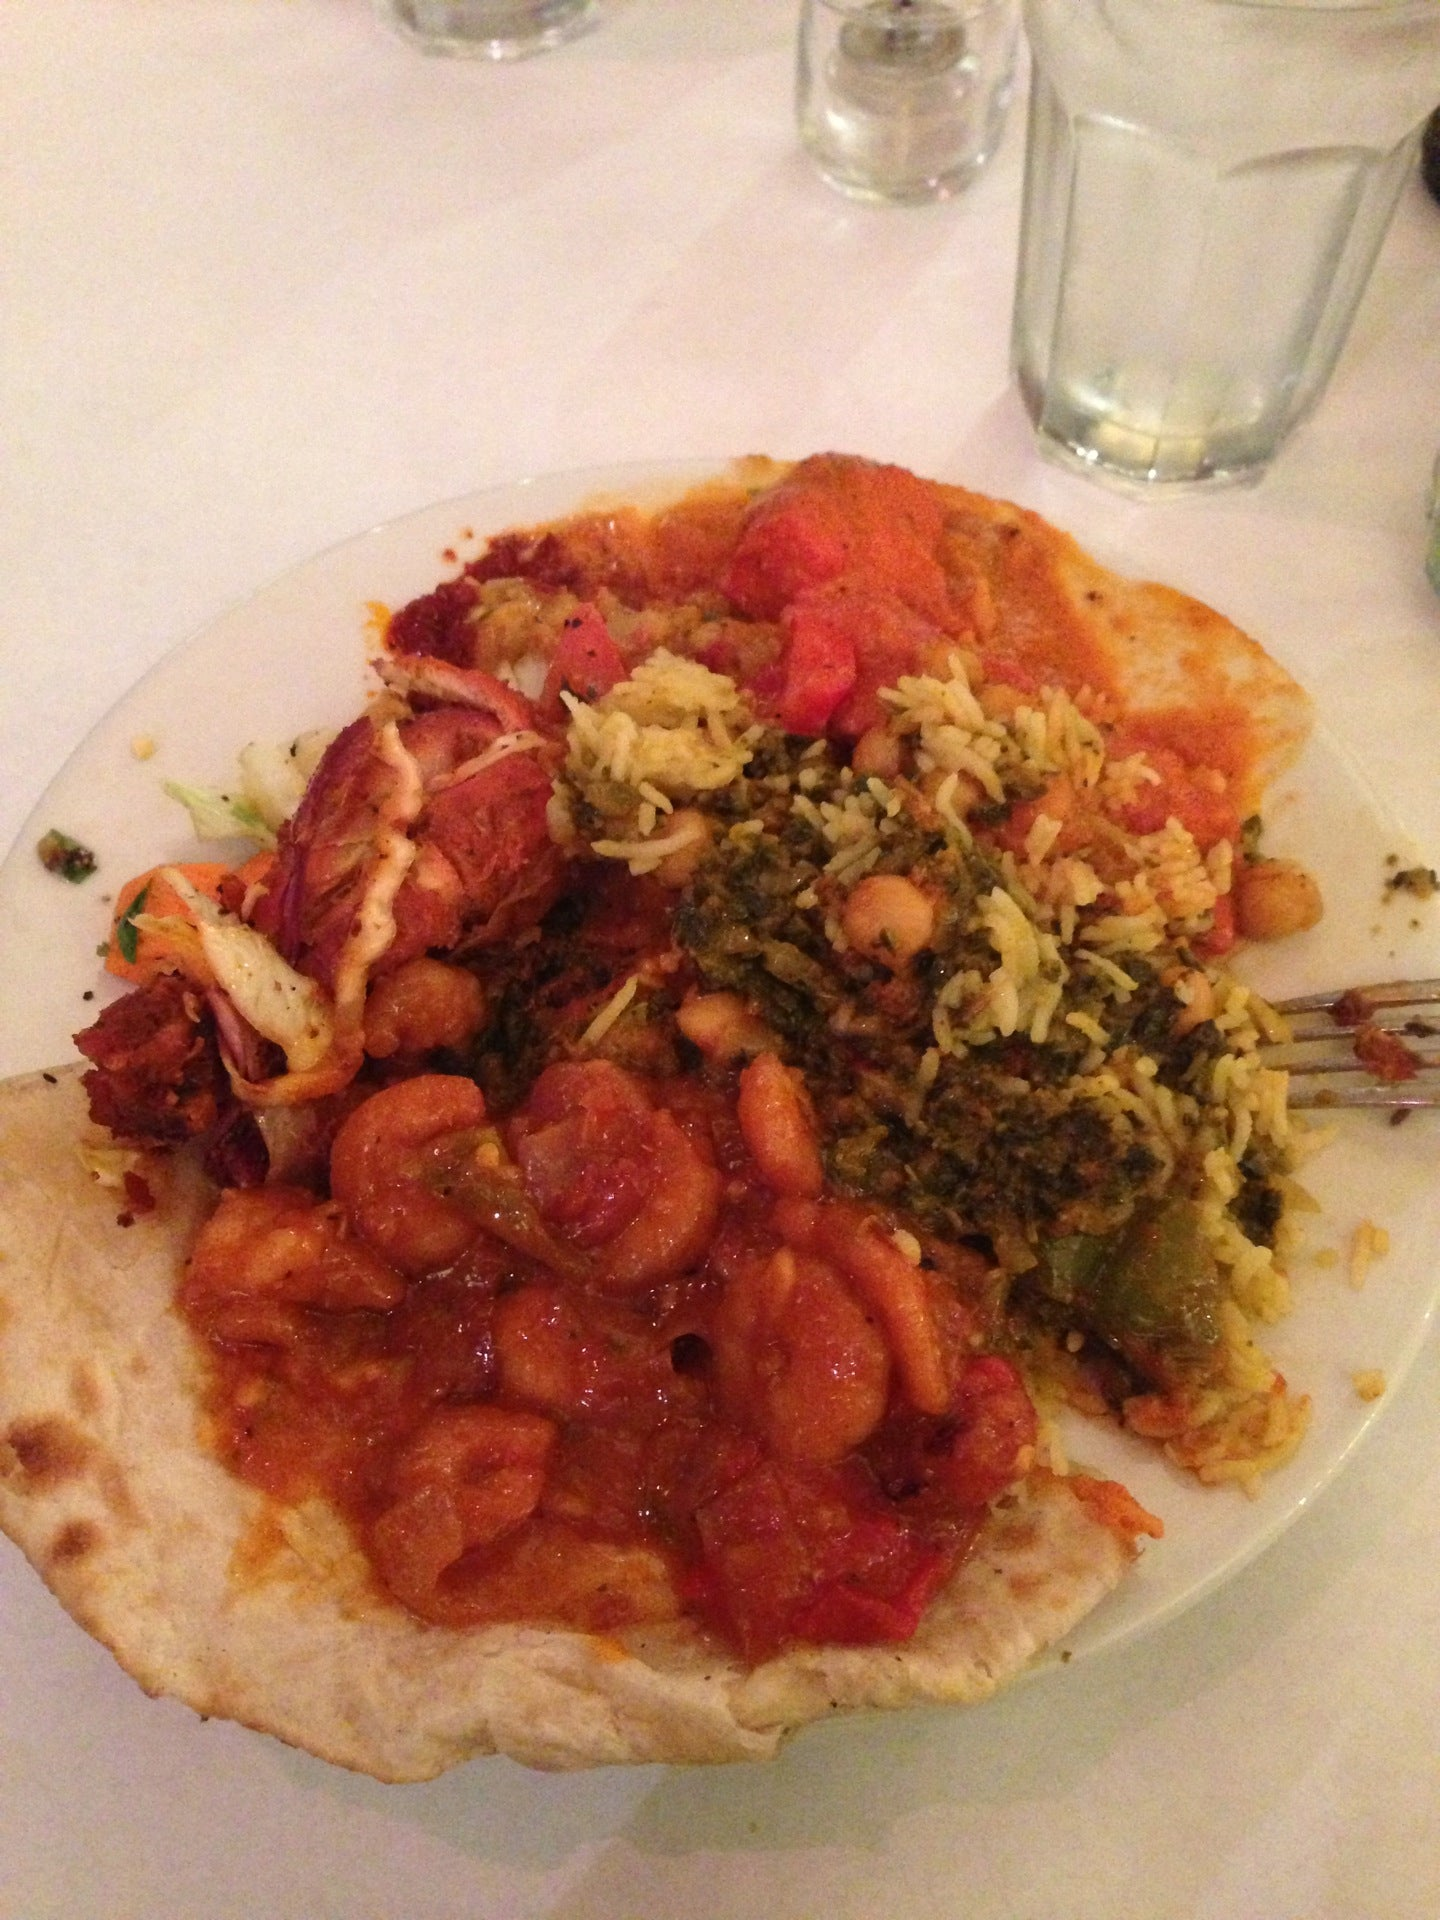 Indian food new orleans best indian restaurant nirvana - The Daily Meal Editors And Community Say